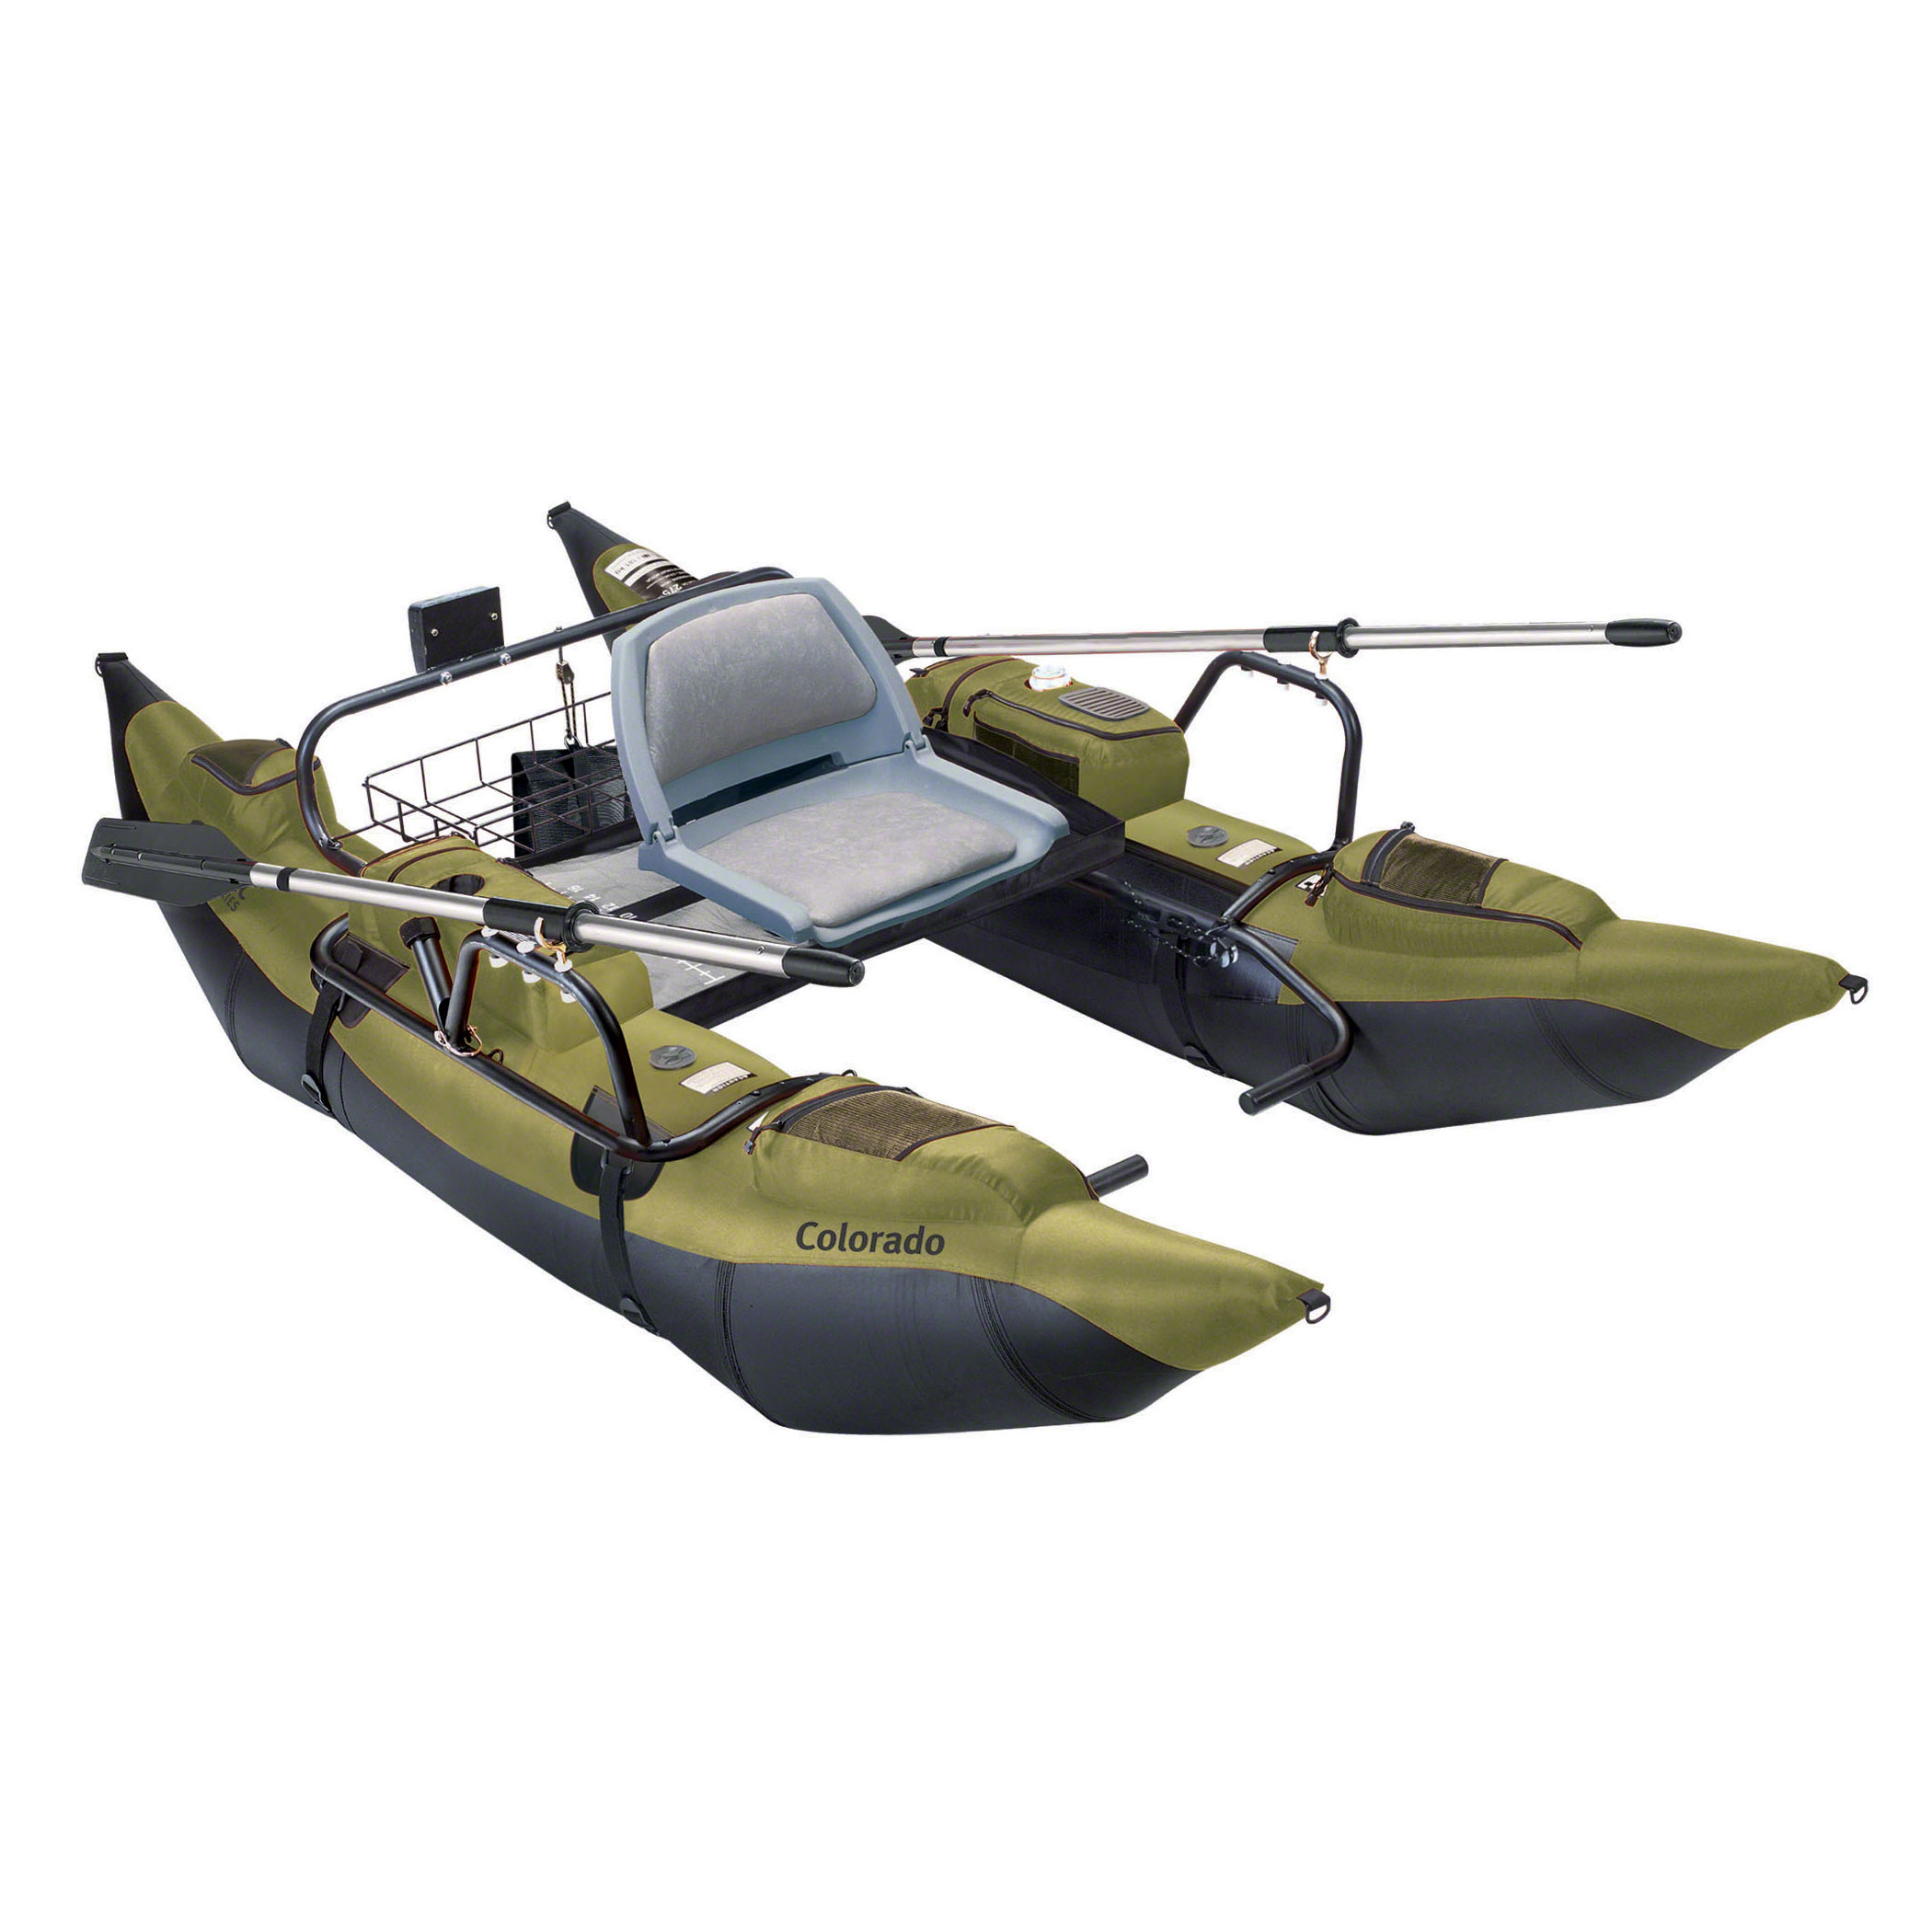 Classic Accessories Colorado Pontoon Fishing Boat by Classic Accessories